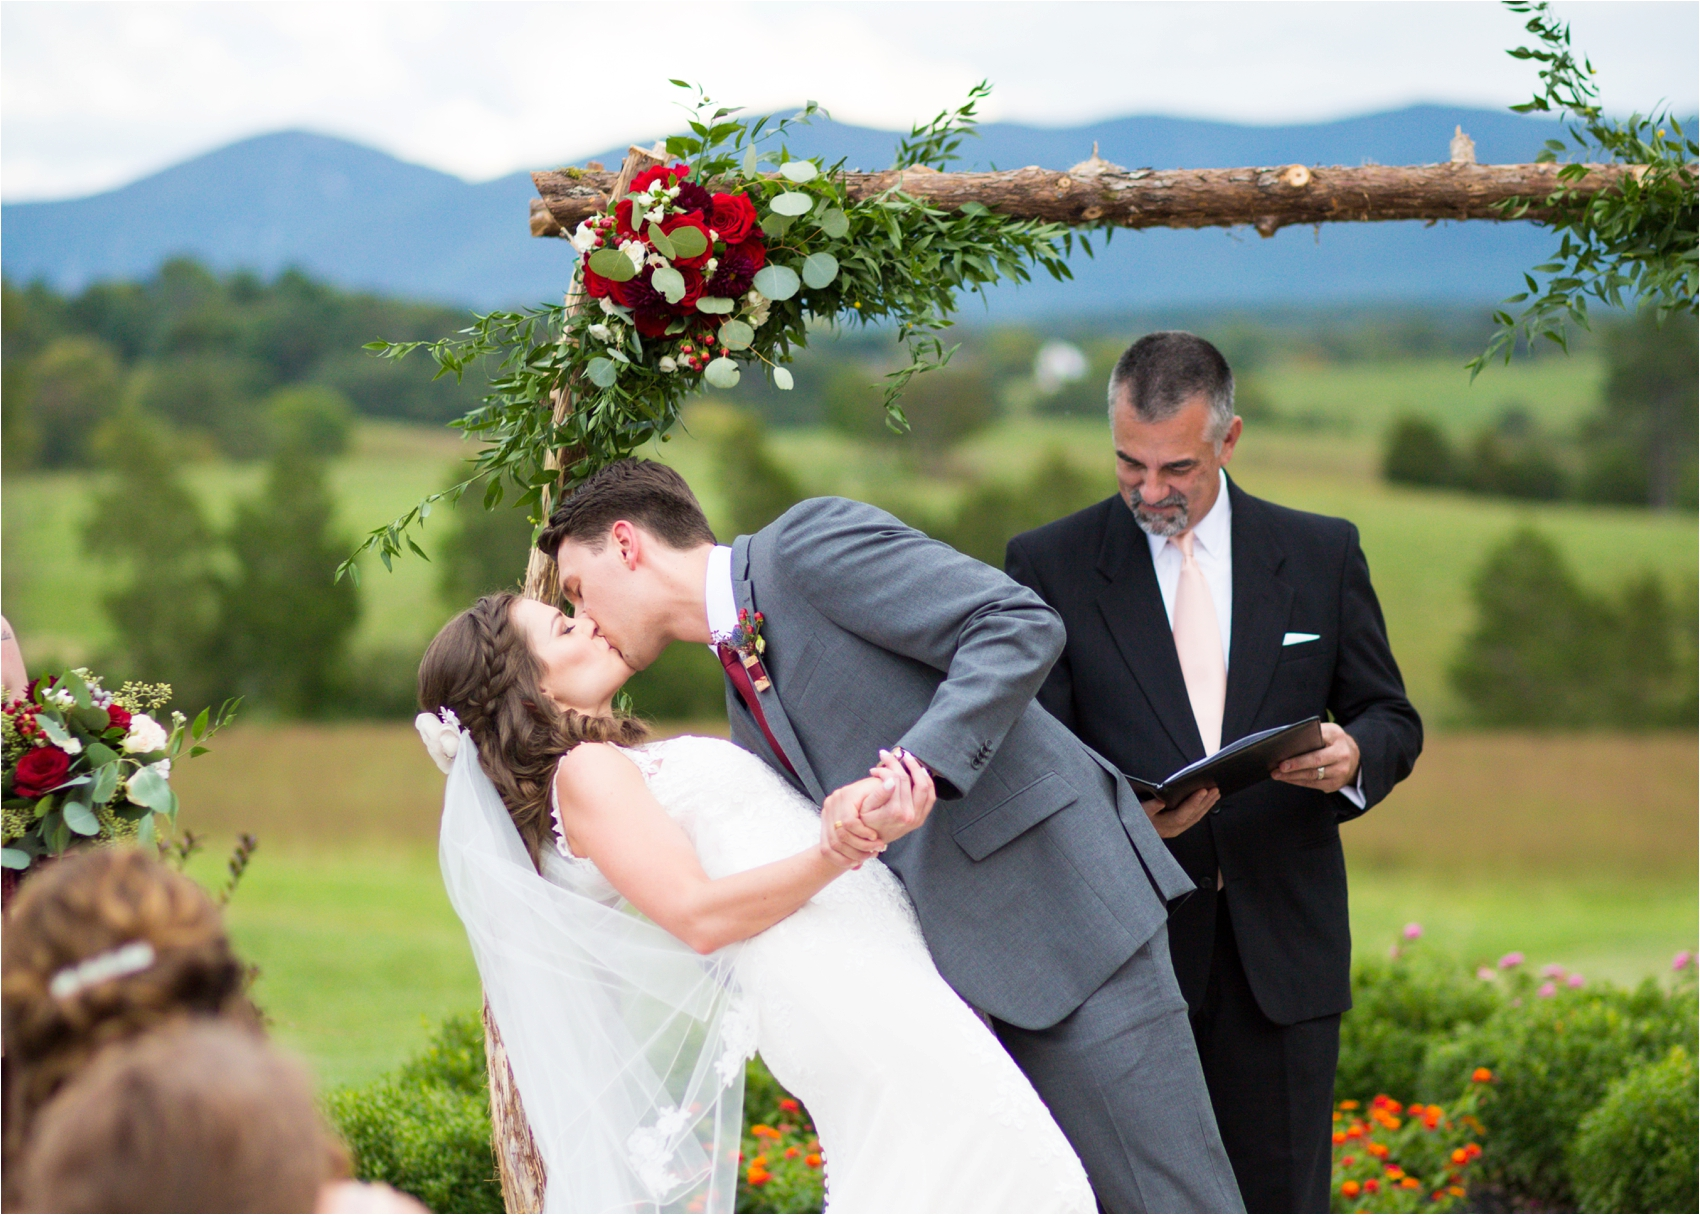 Feather-and-Oak-Photography-Cross-Keys-Vineyard-Wedding-0916.jpg